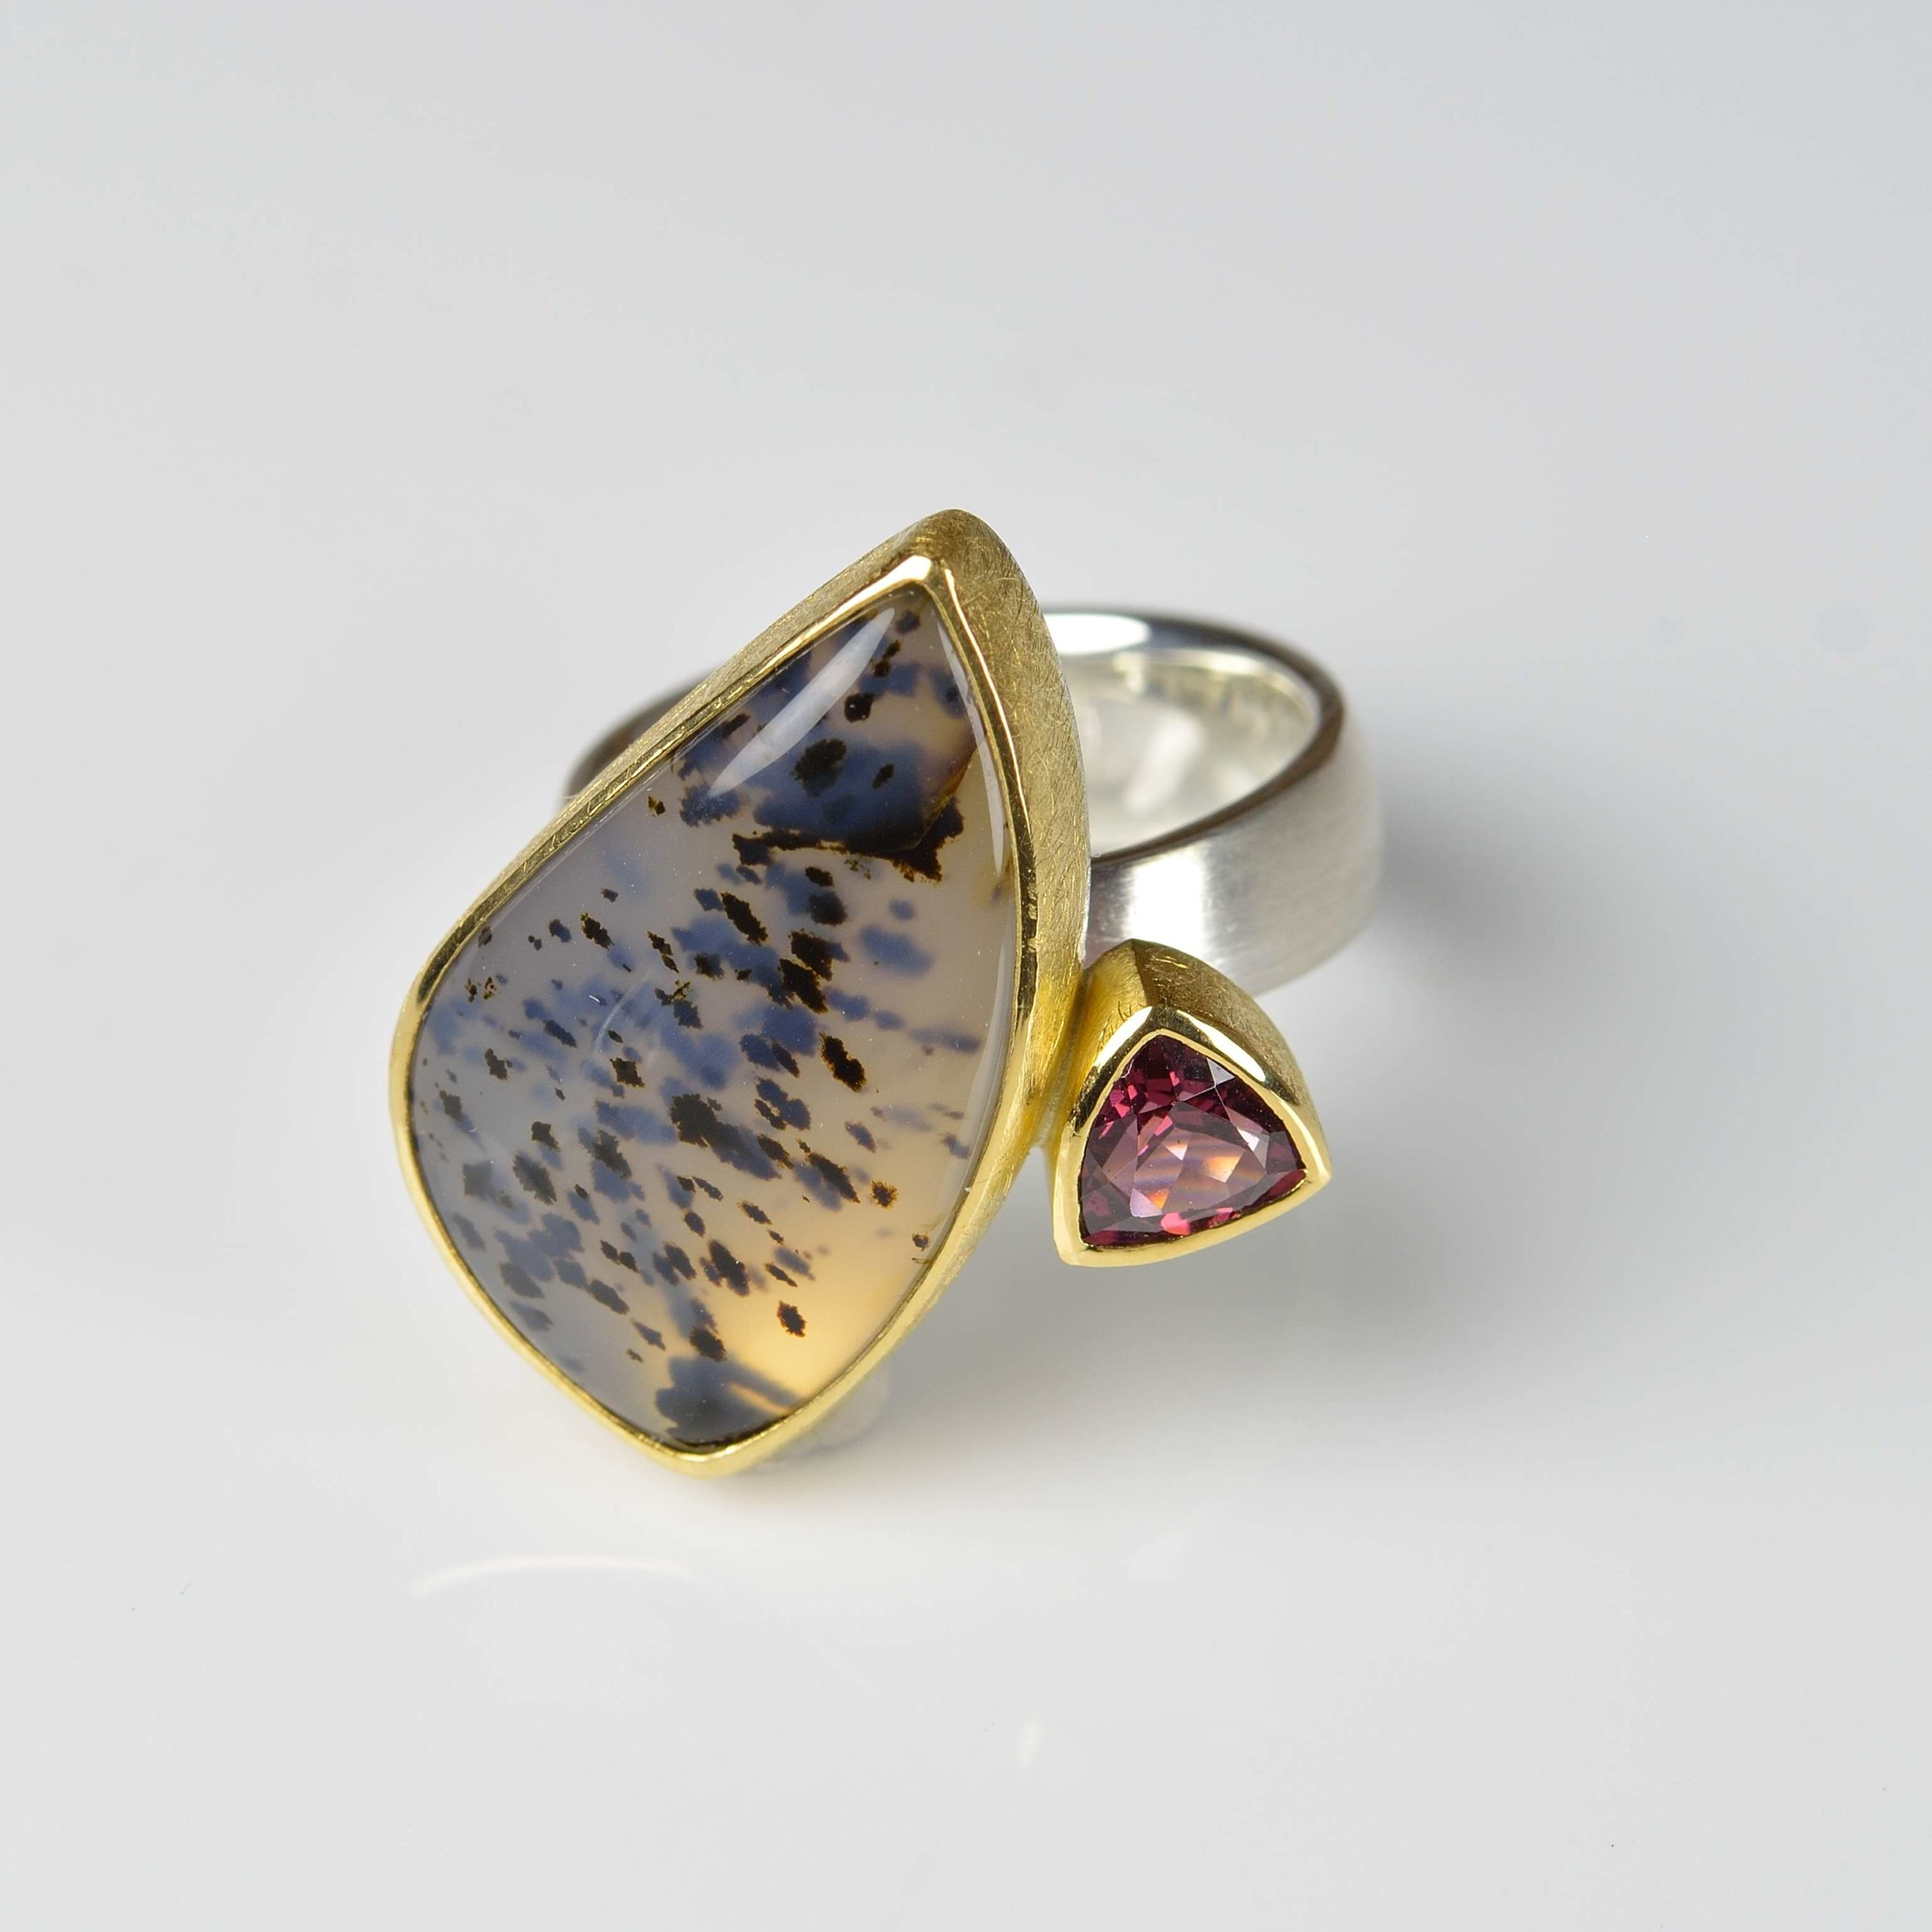 sterling silver and 22ct gold ring with dentritic agate and rhodolite